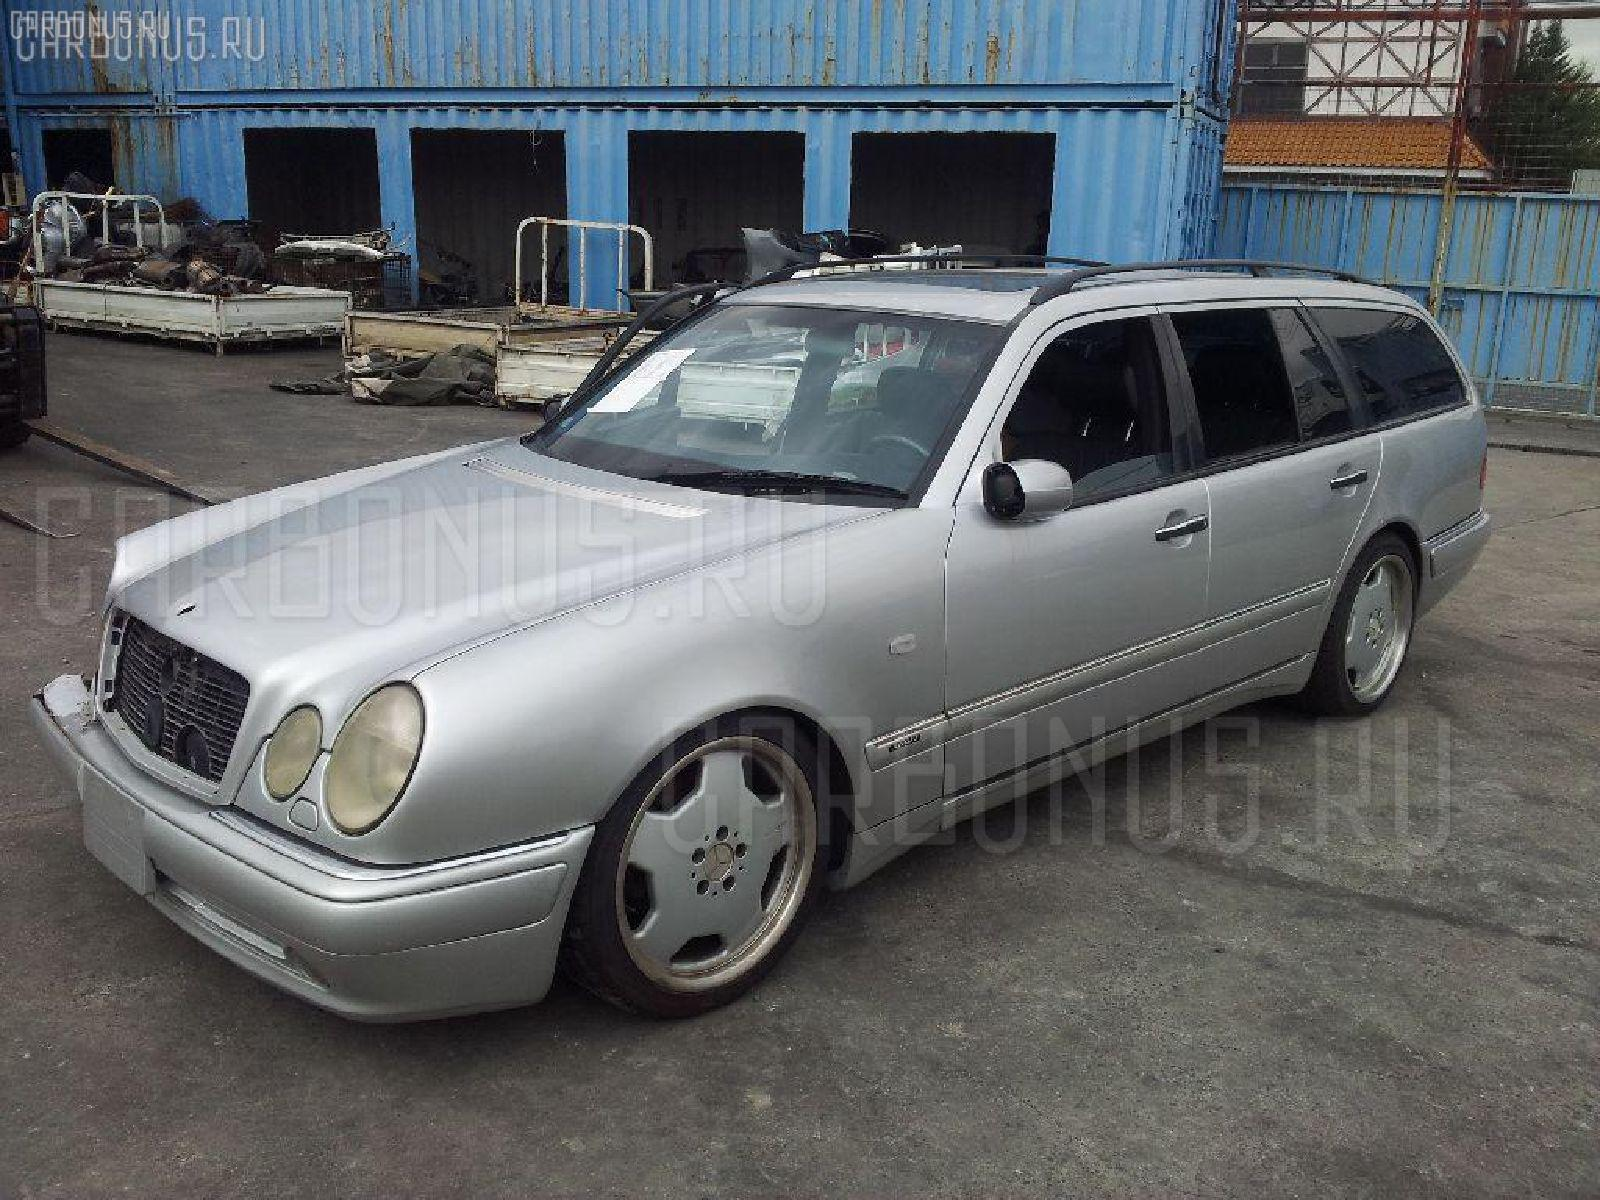 Air bag MERCEDES-BENZ E-CLASS STATION WAGON S210.265 Фото 5